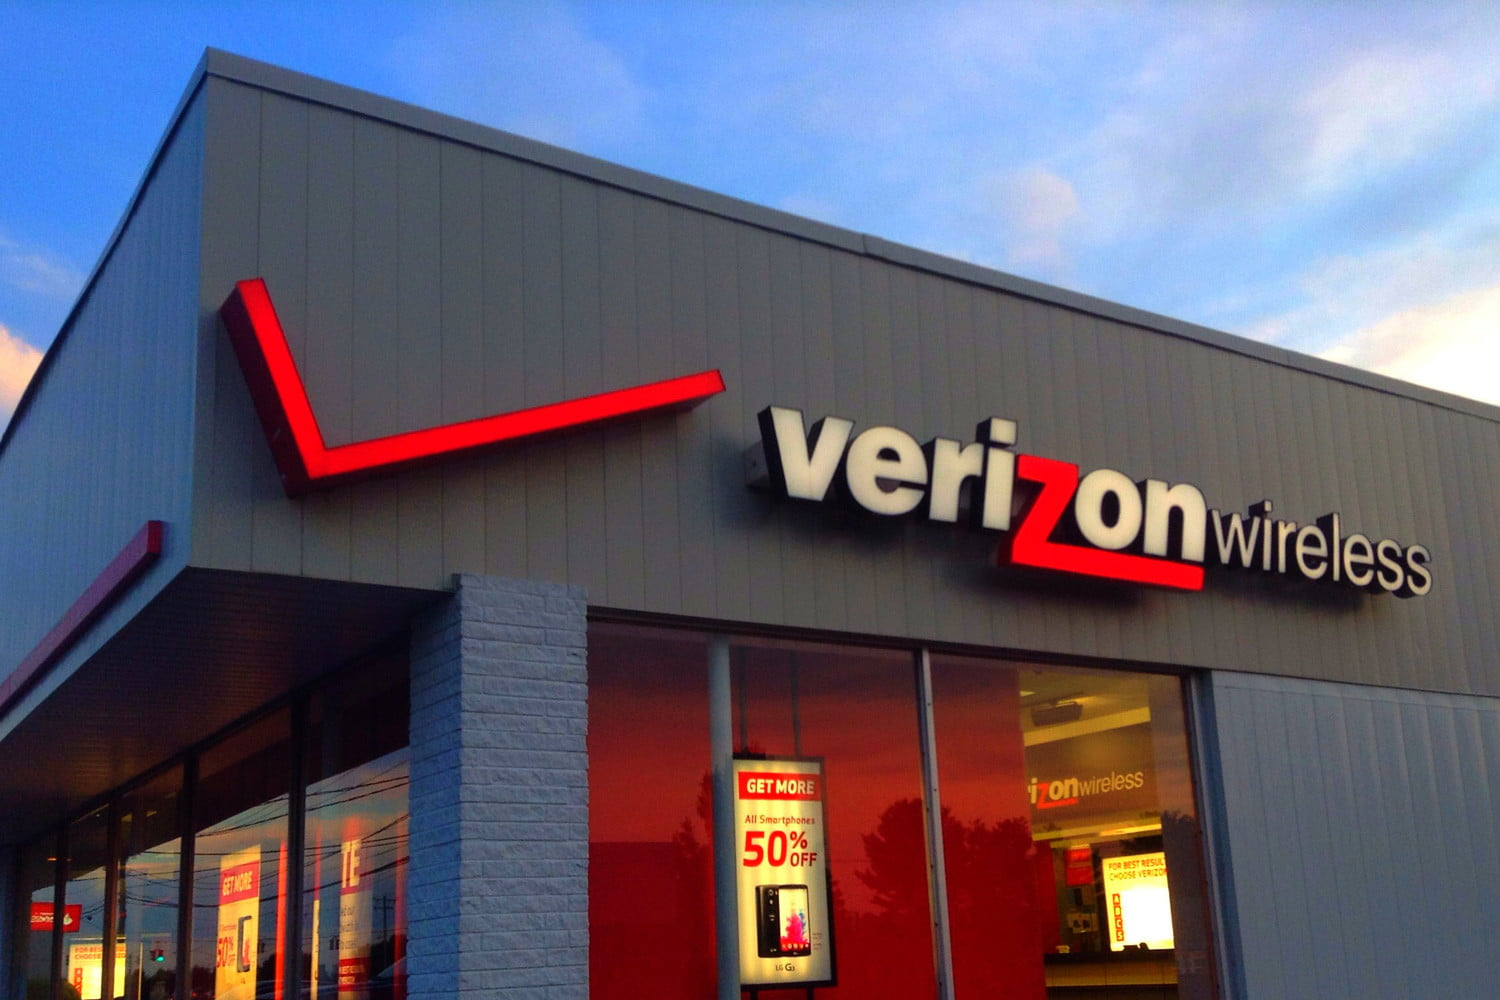 Use multiple phone numbers on one device with Verizon's 'My Numbers' app